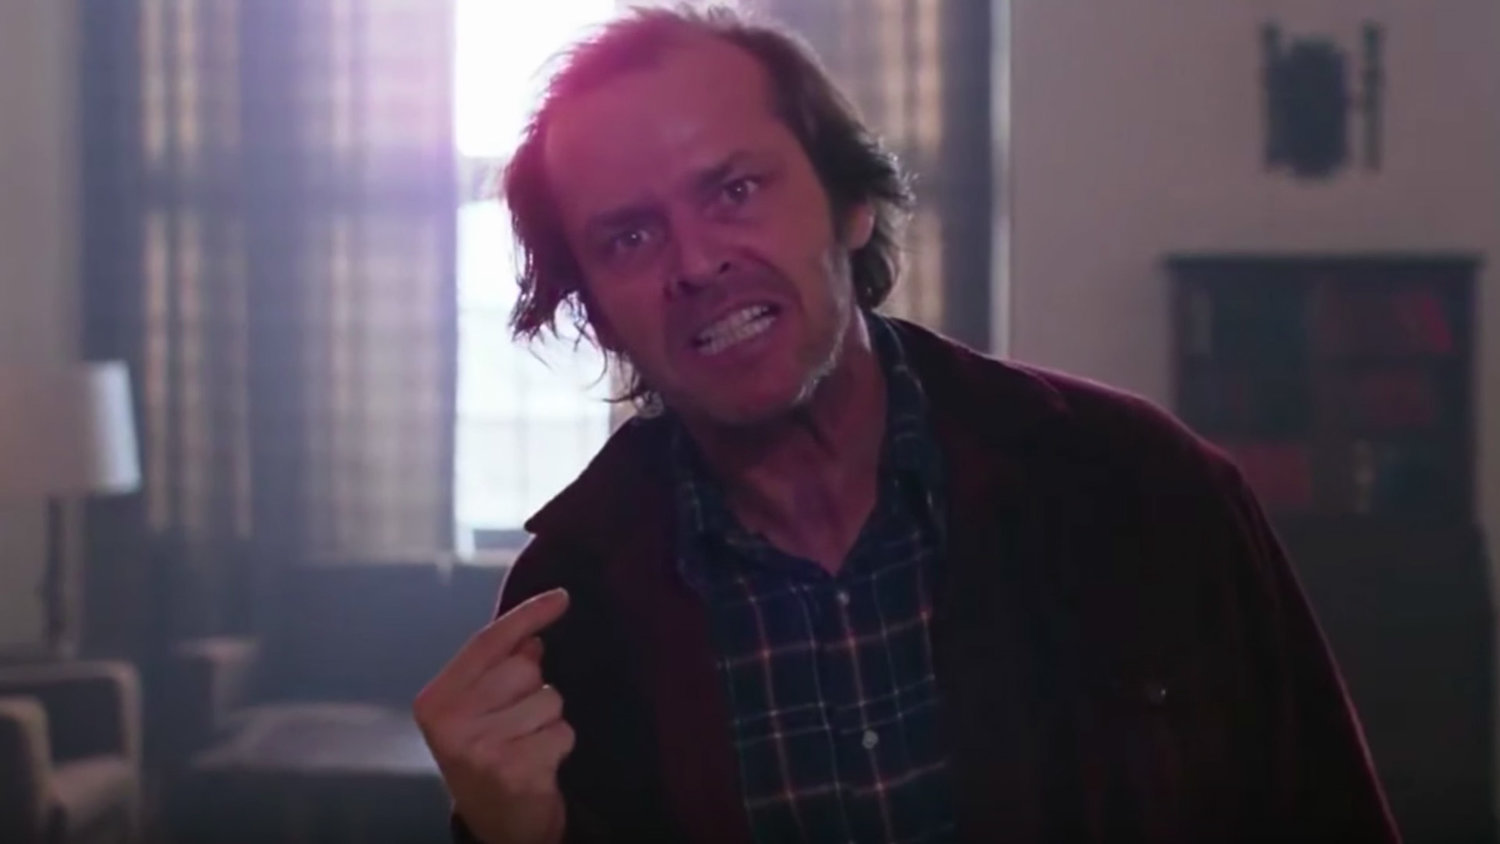 Watch: Jack Nicholson and the Art of Anger